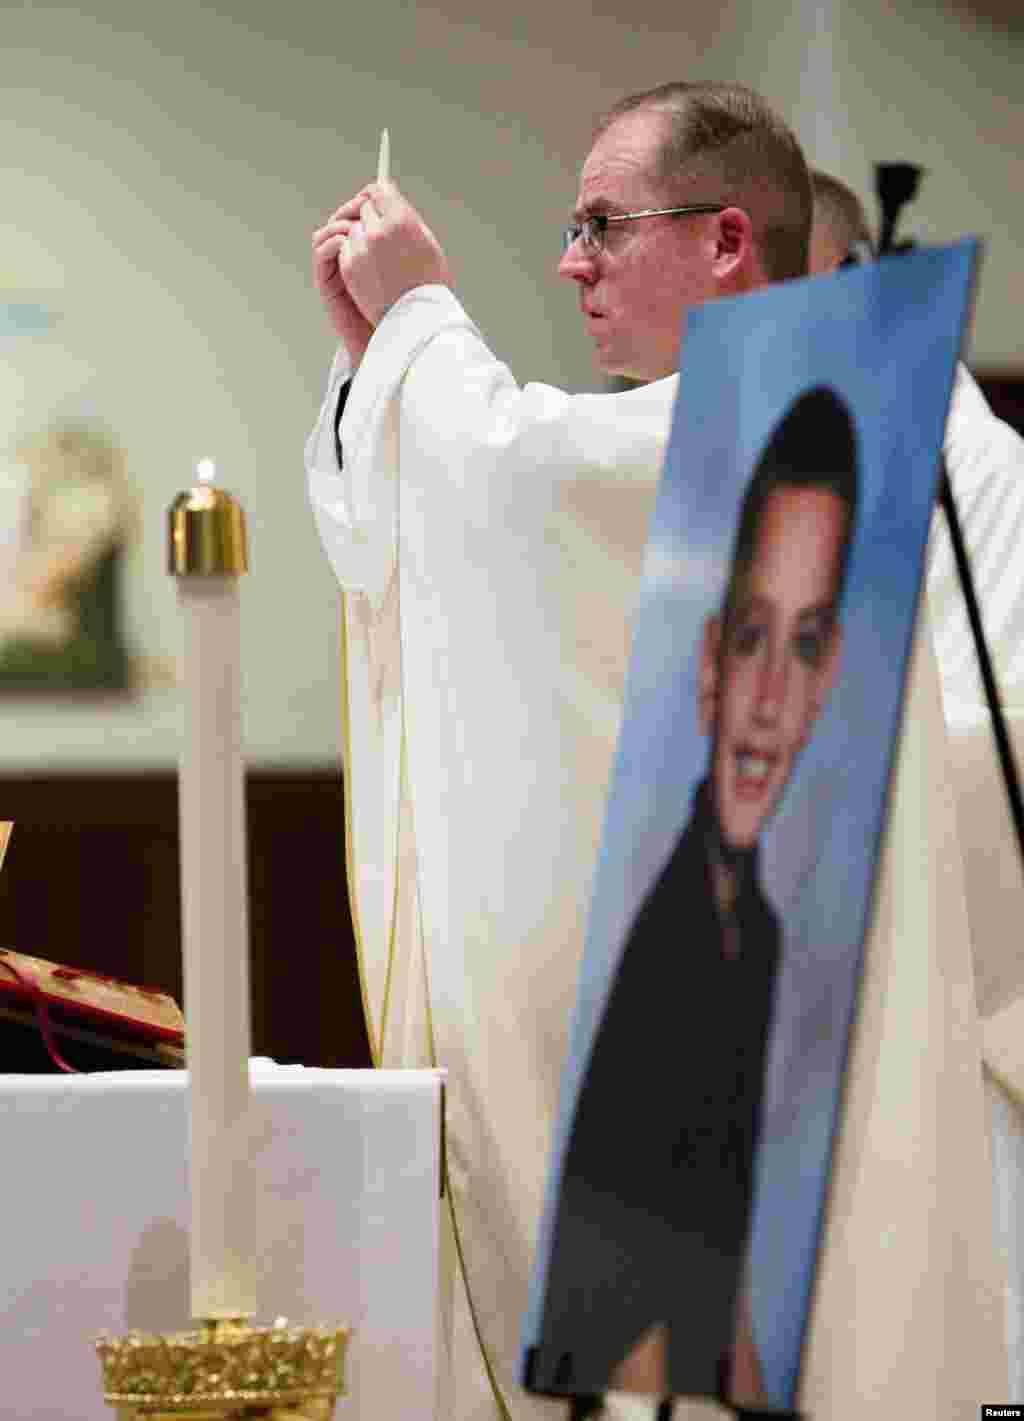 Father Sean Connor conducts a mass to celebrate the young life of Martin Richard of Dorchester in Boston, Massachusetts, on June 9, 2013.